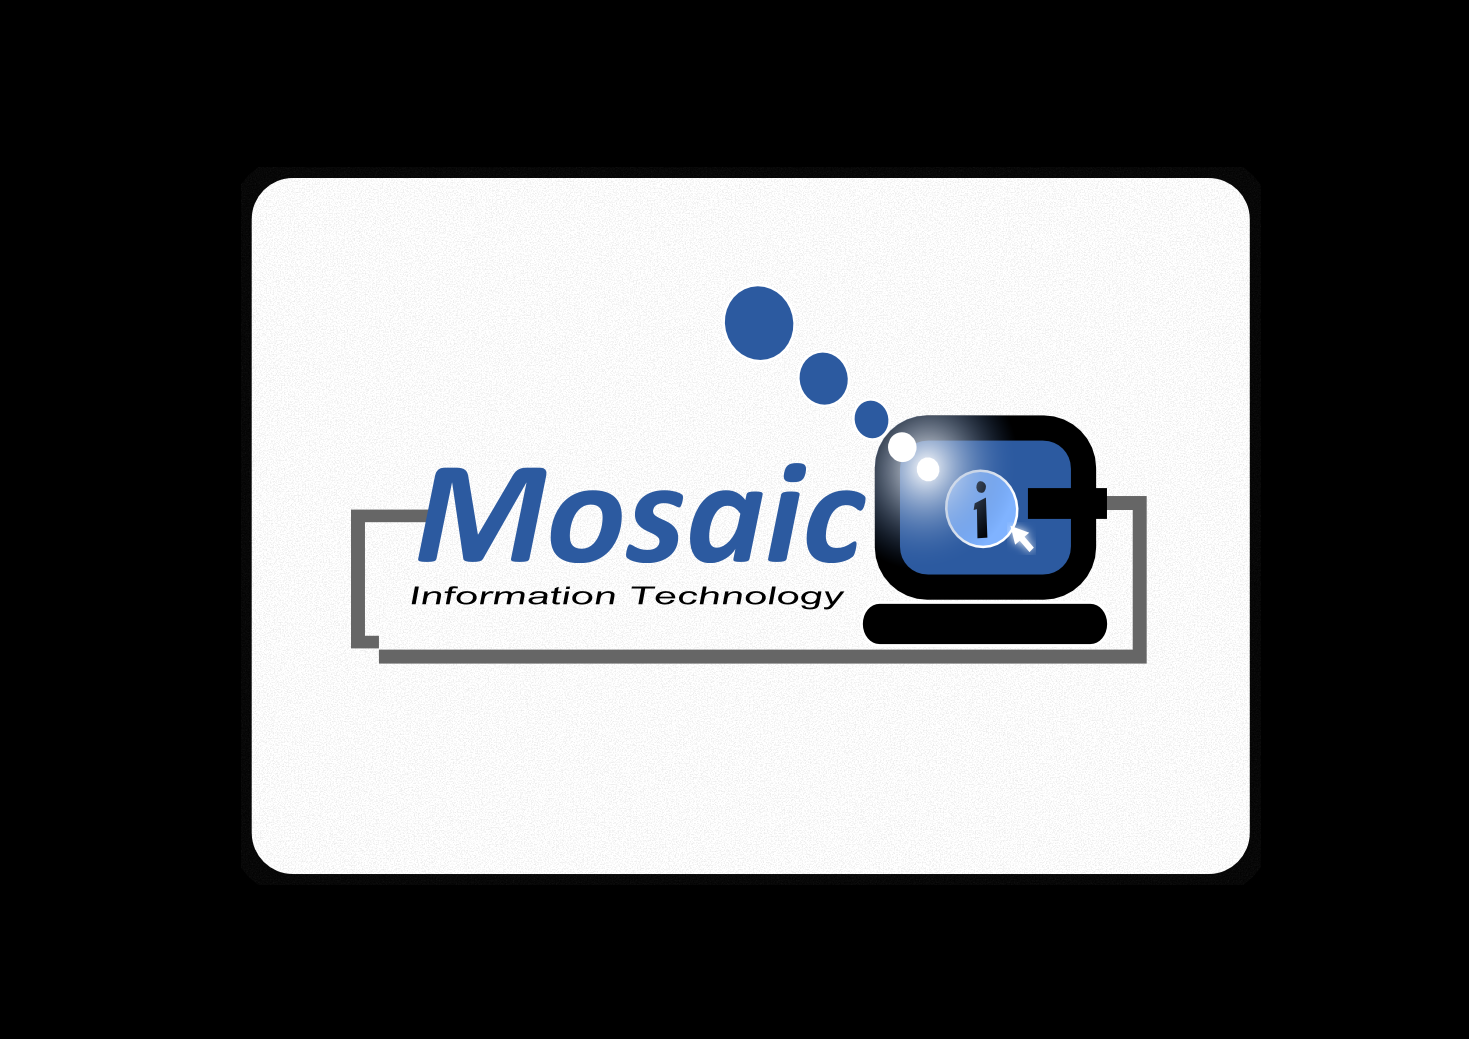 Logo Design by whoosef - Entry No. 76 in the Logo Design Contest Mosaic Information Technology Logo Design.